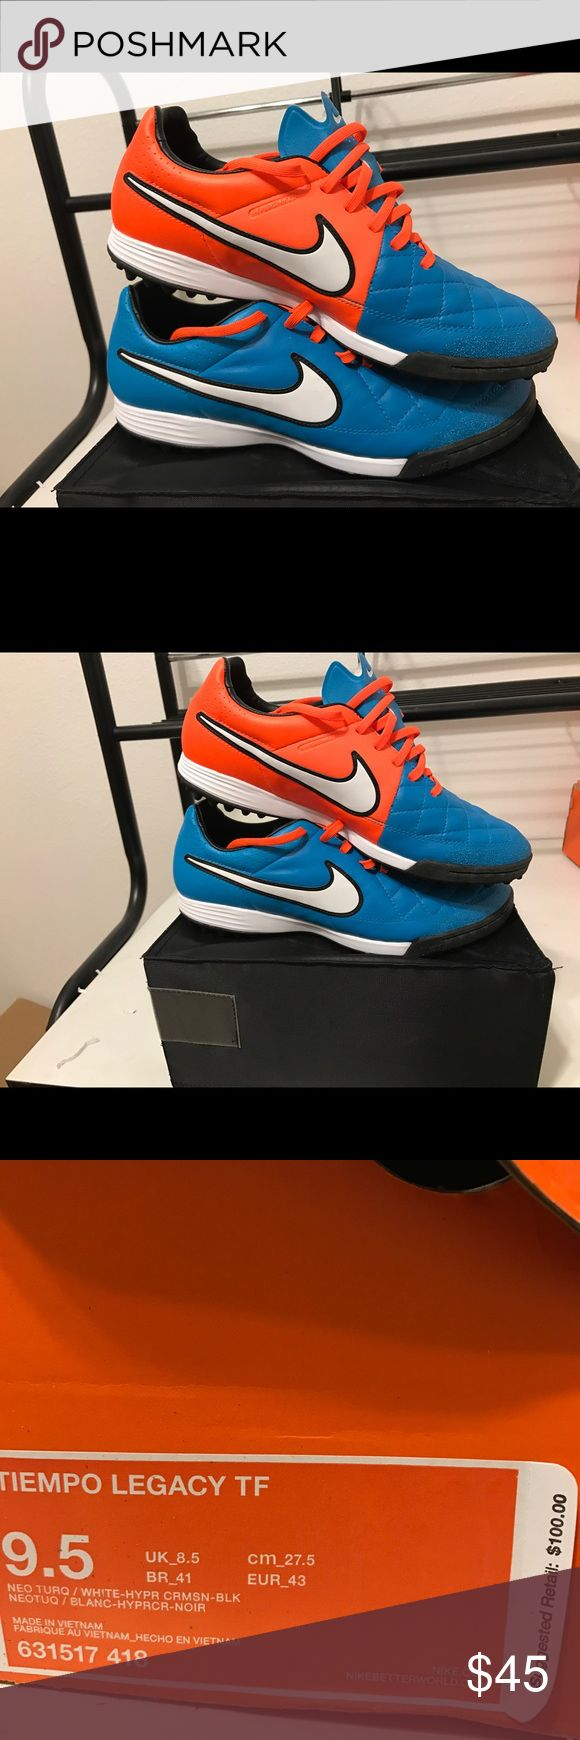 Men's Nike turf shoes indoor soccer Men's size 9.5 turf shoes. Never worn, still in box. Primary purpose for indoor soccer, but can be used otherwise. Nike Shoes Athletic Shoes